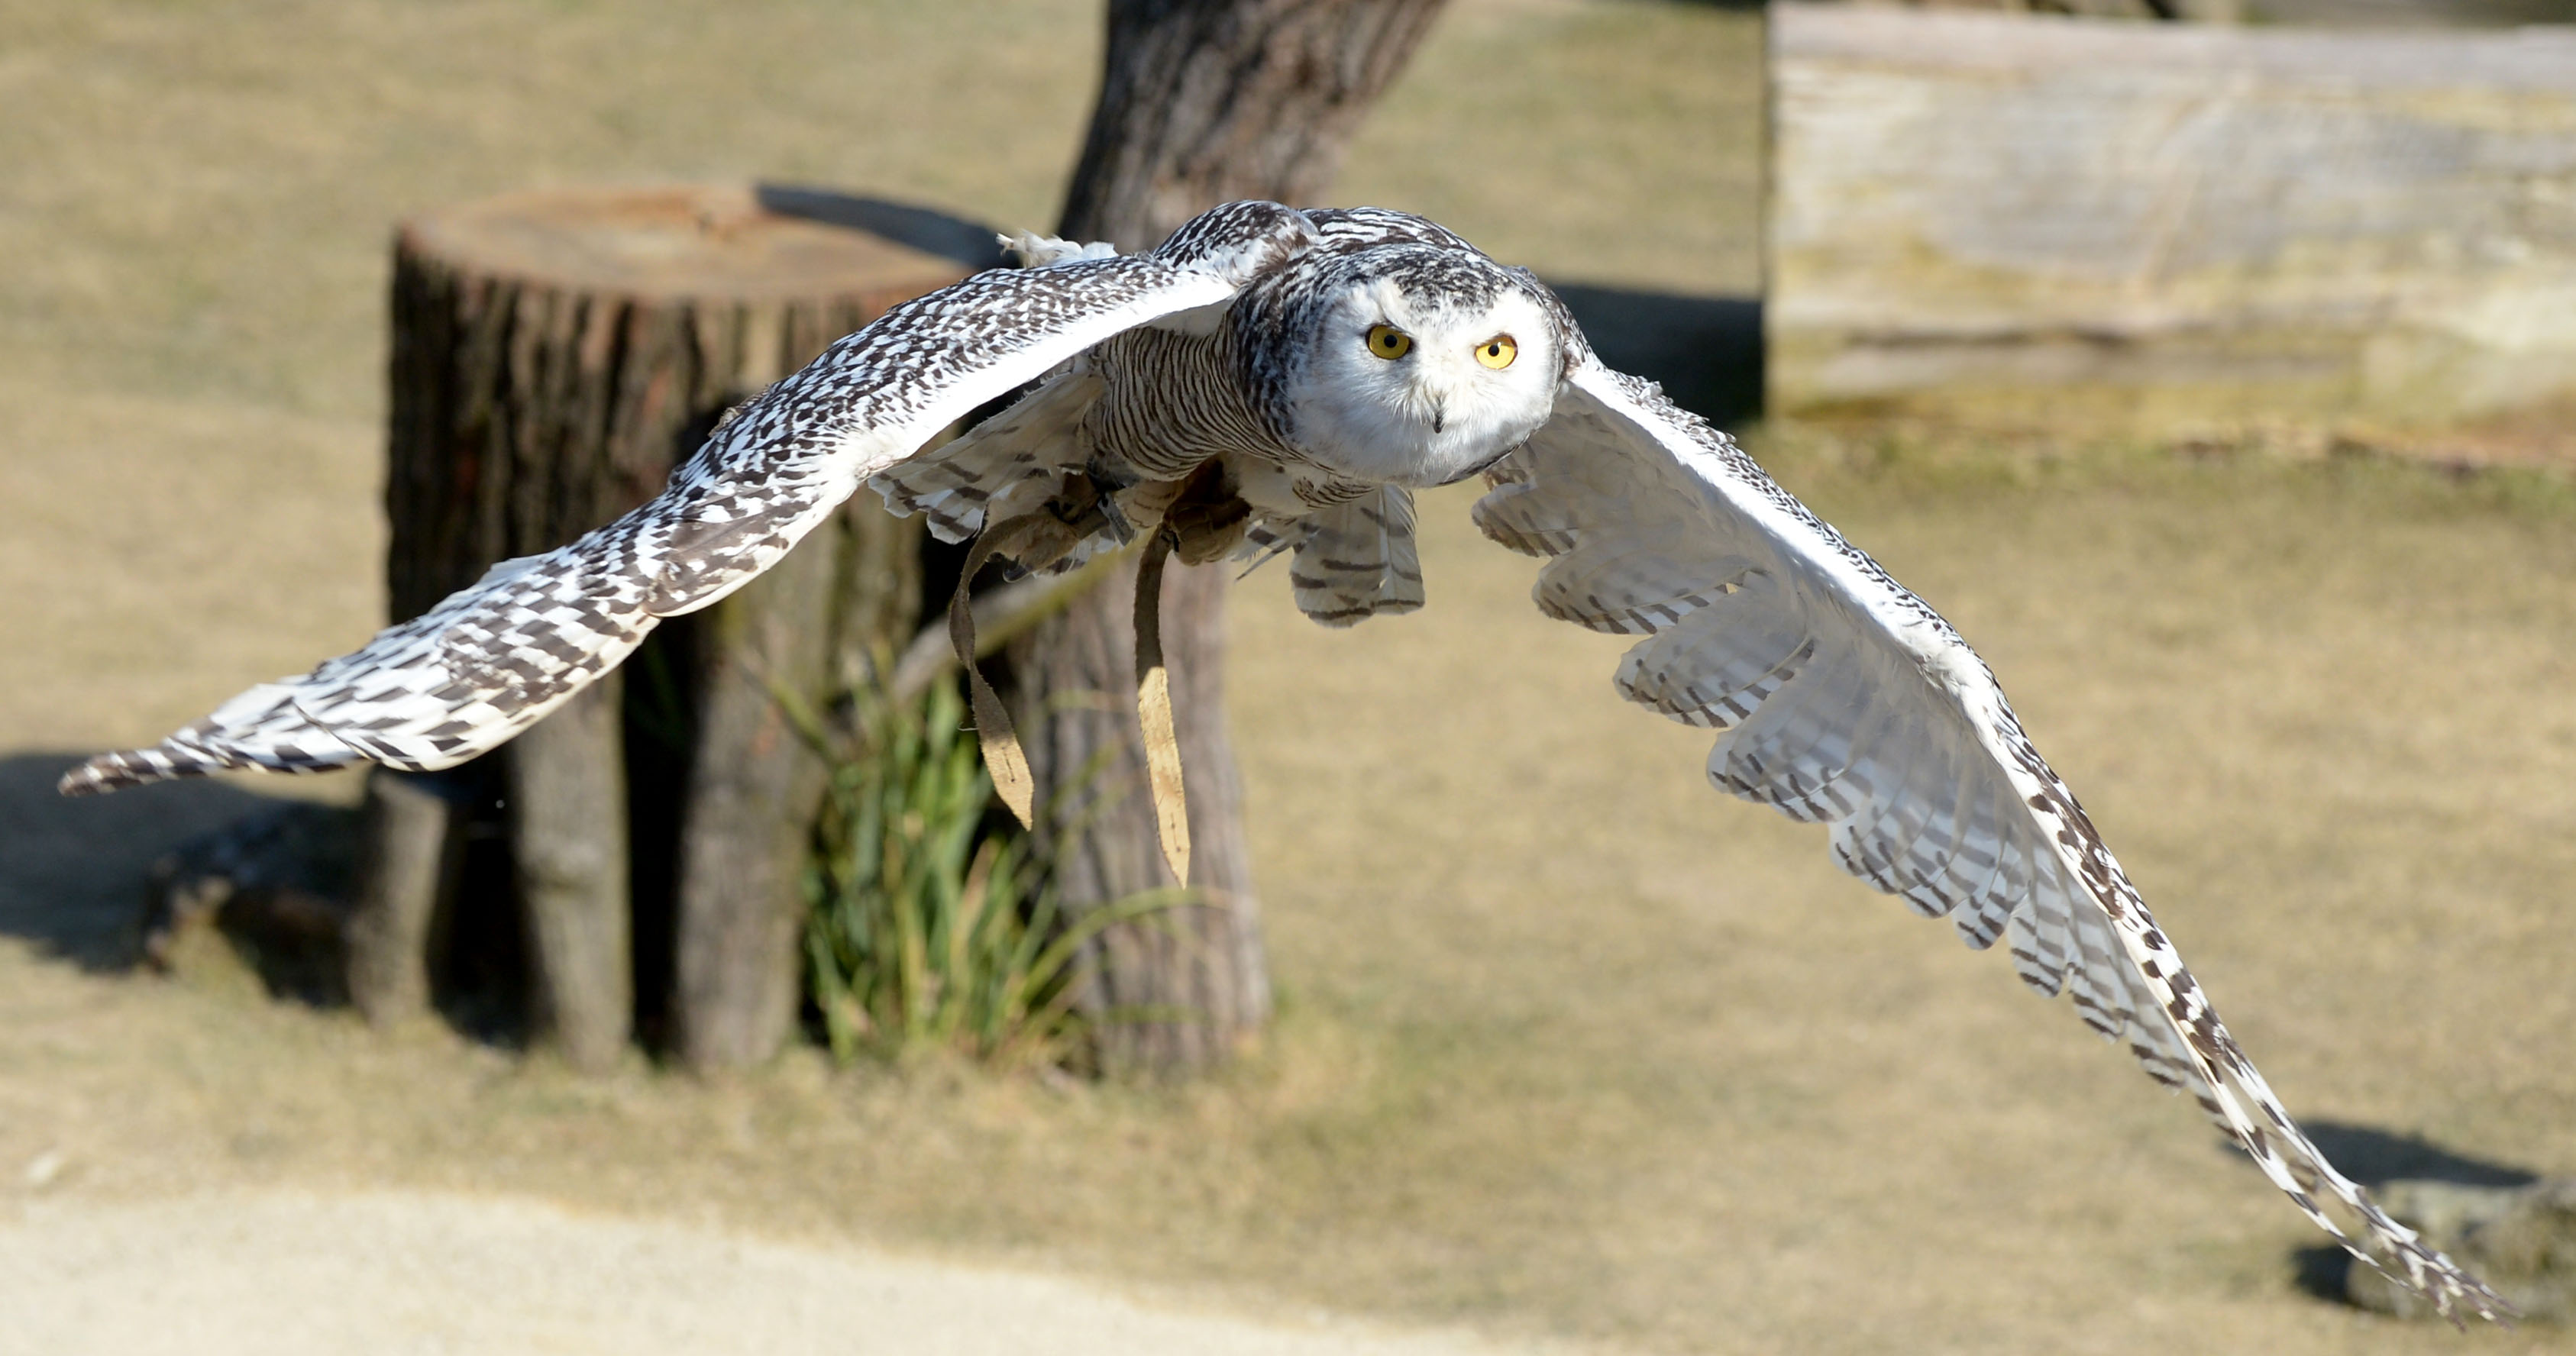 The Owls Wings May Be A Model For Noise Reduced Rotor Blades Photo